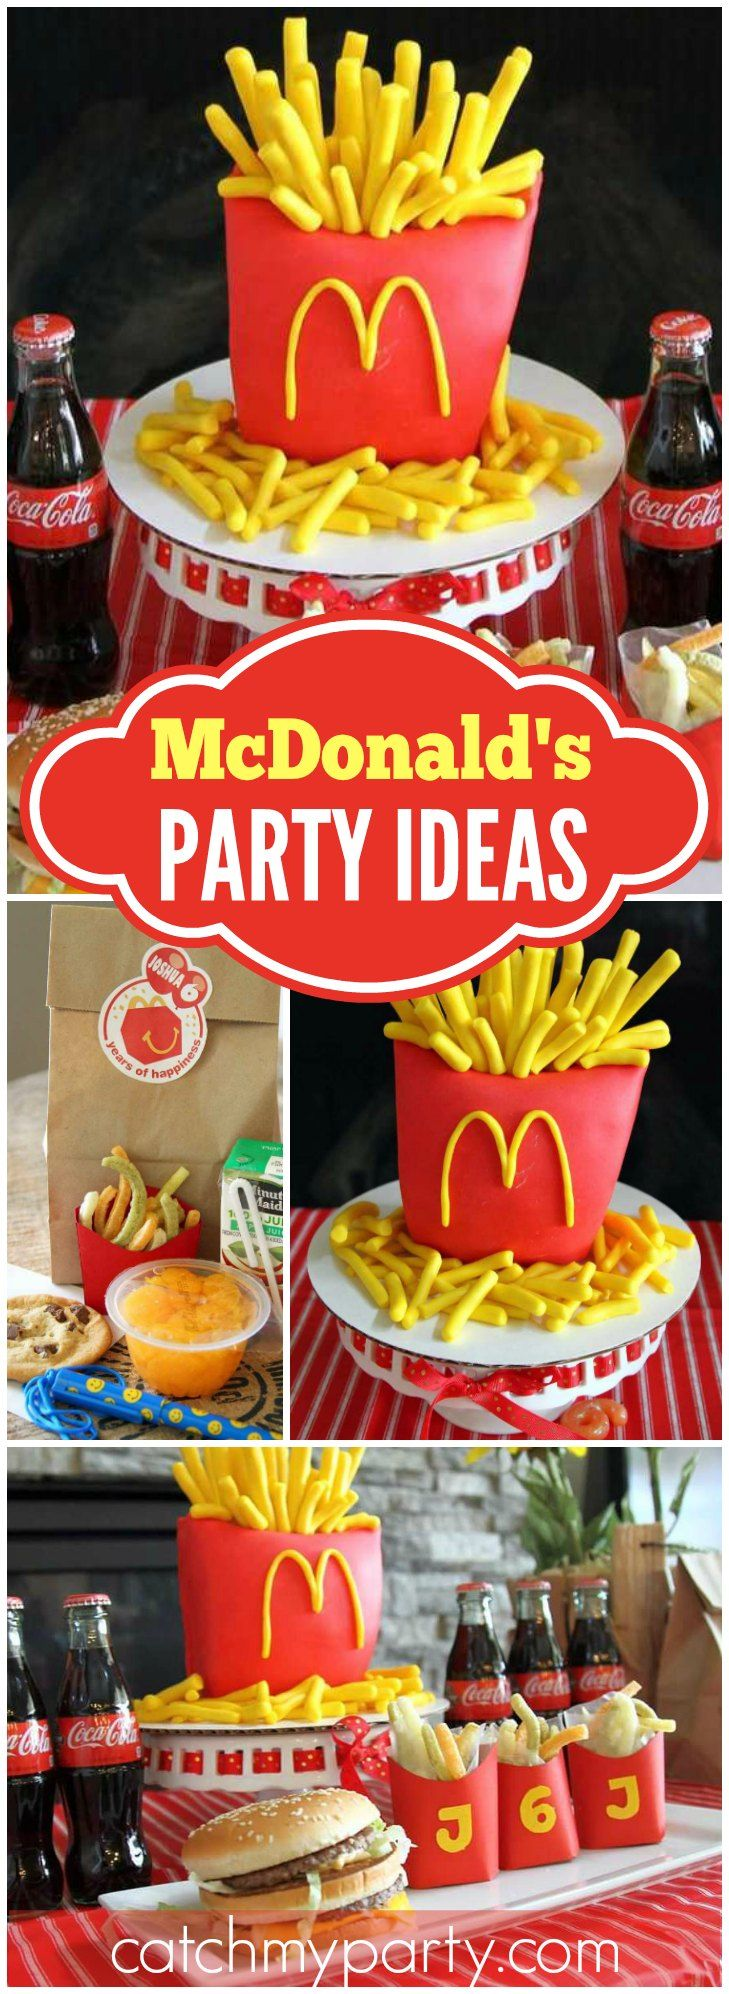 48 best McDonalds Party images on Pinterest | Anniversary parties ...